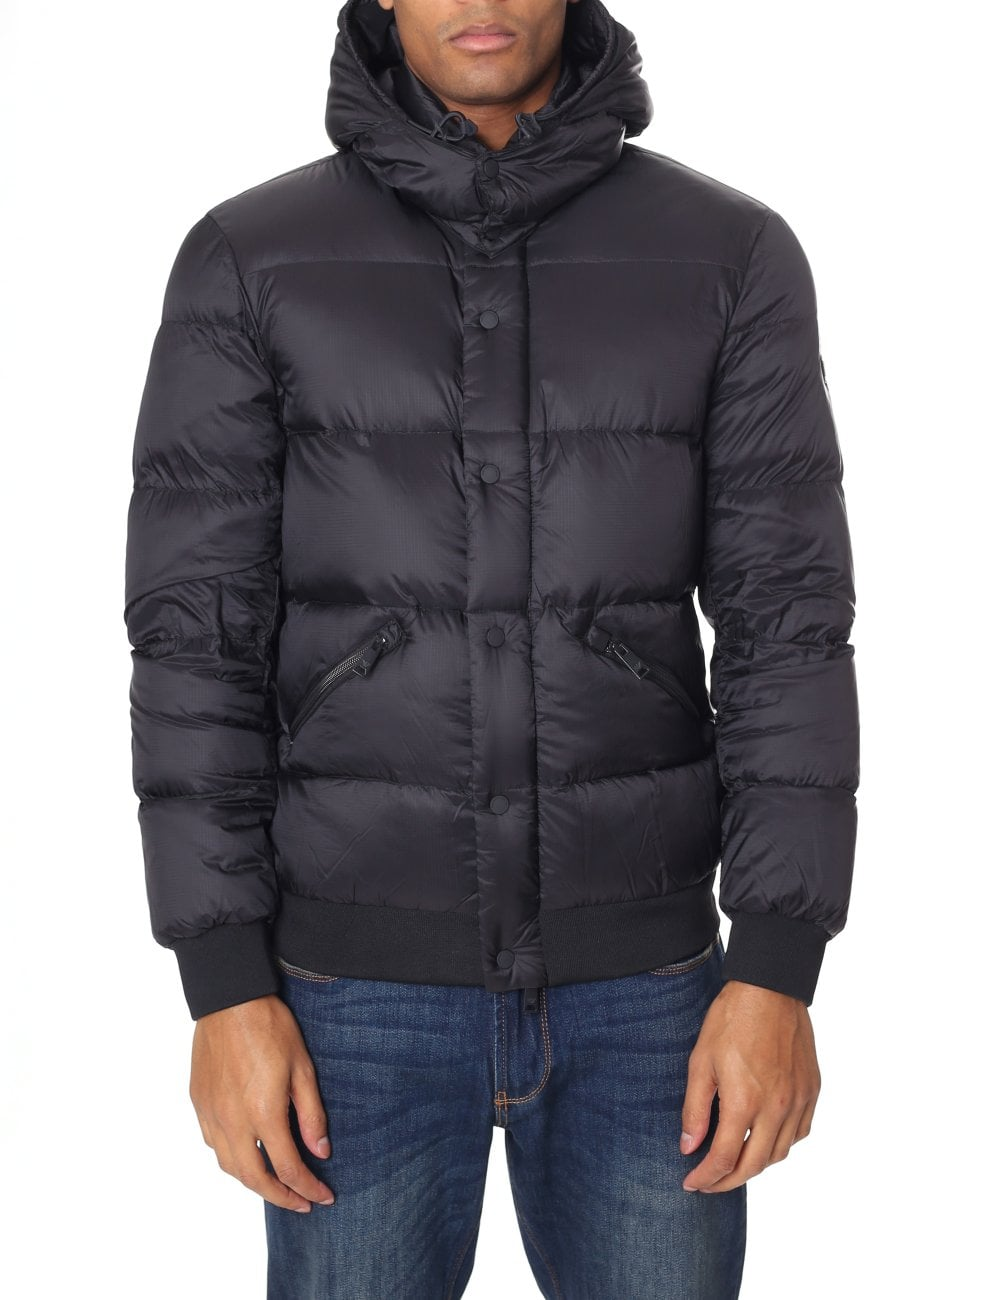 91bc2b0e Emporio Armani Men's Quilted Hooded Puffa Jacket